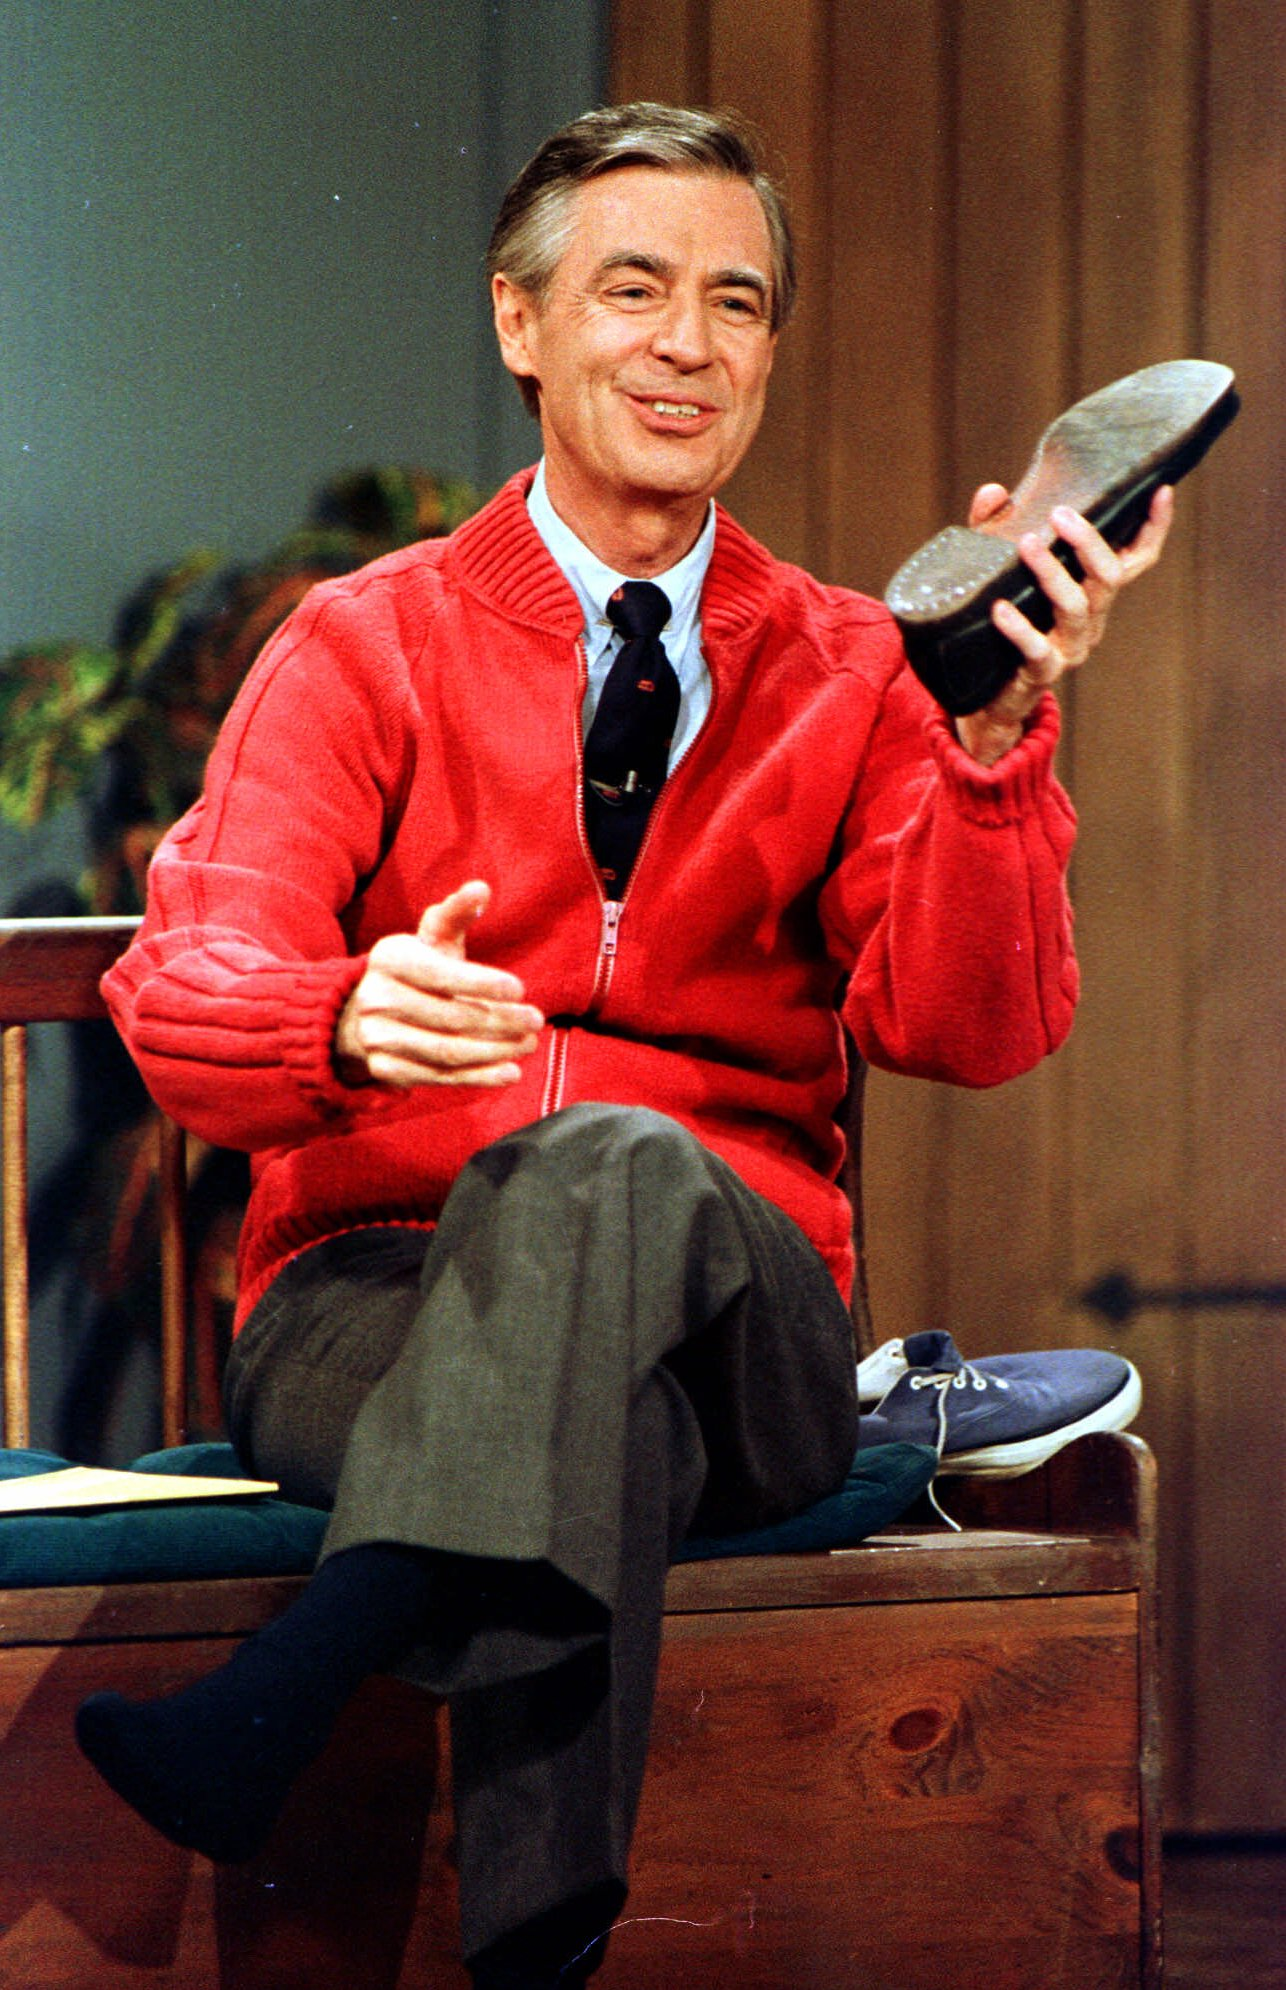 Mister Rogers Sneakers Remember Mister Rogers'